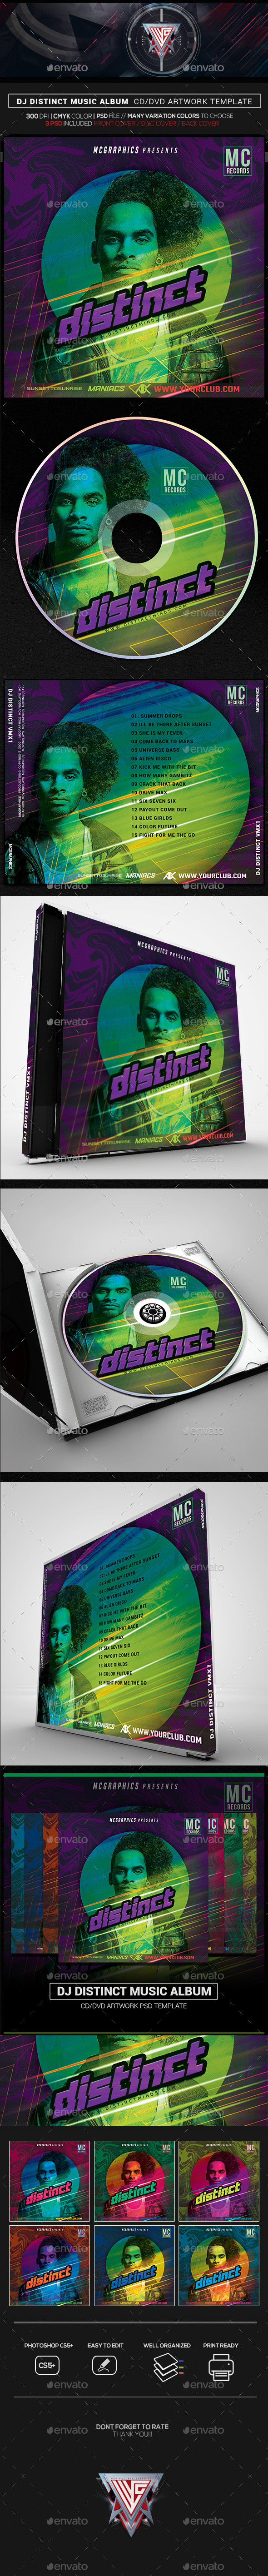 DJ Distinct Album Artwork CD/DVD Template - CD & DVD Artwork Print Templates